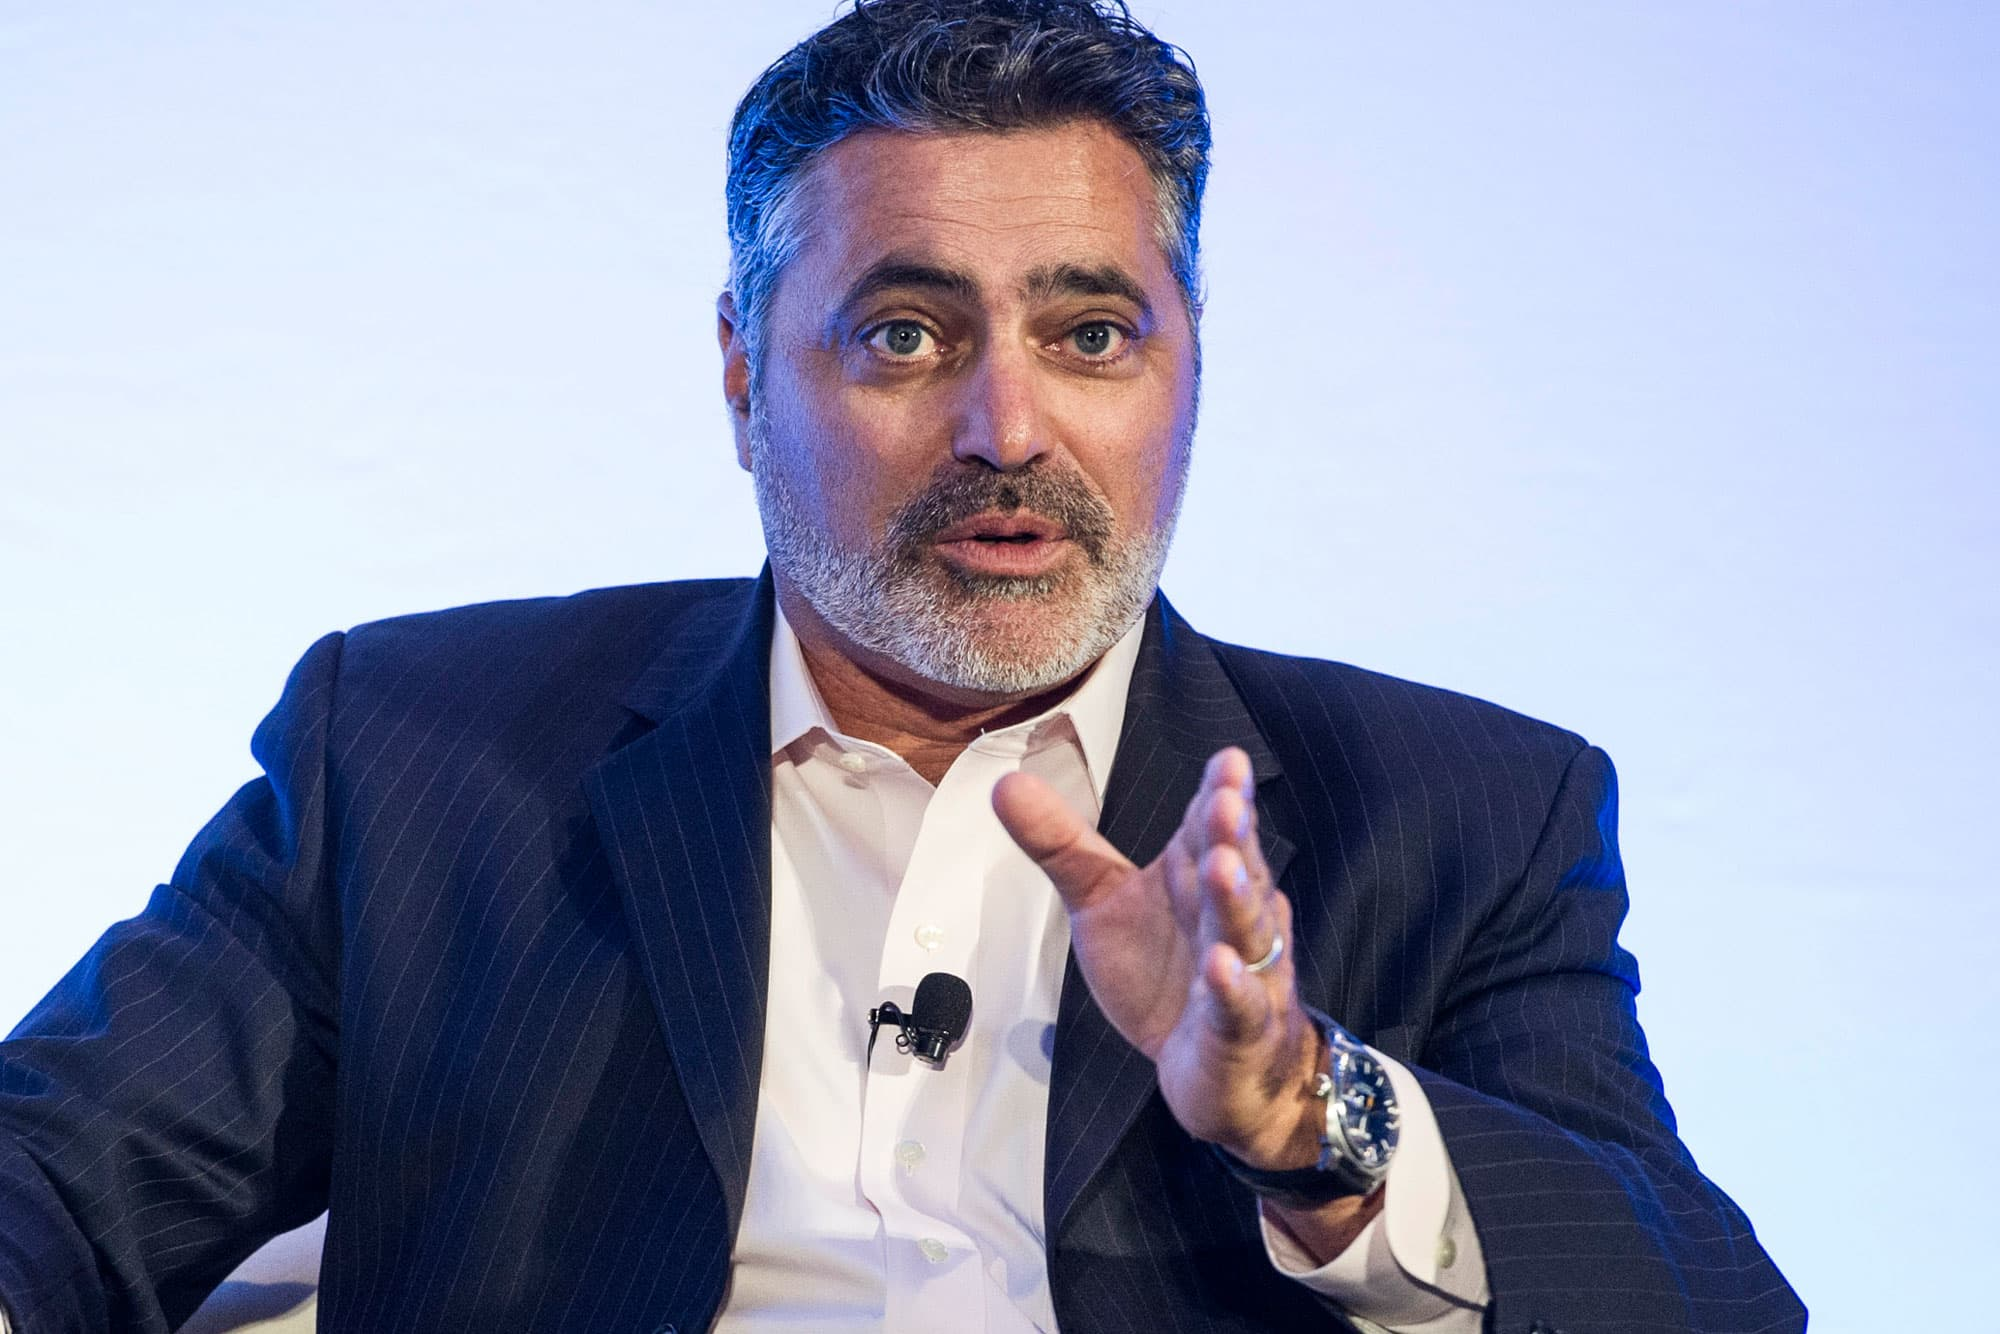 Cloudera announces CEO departure, stock plunges